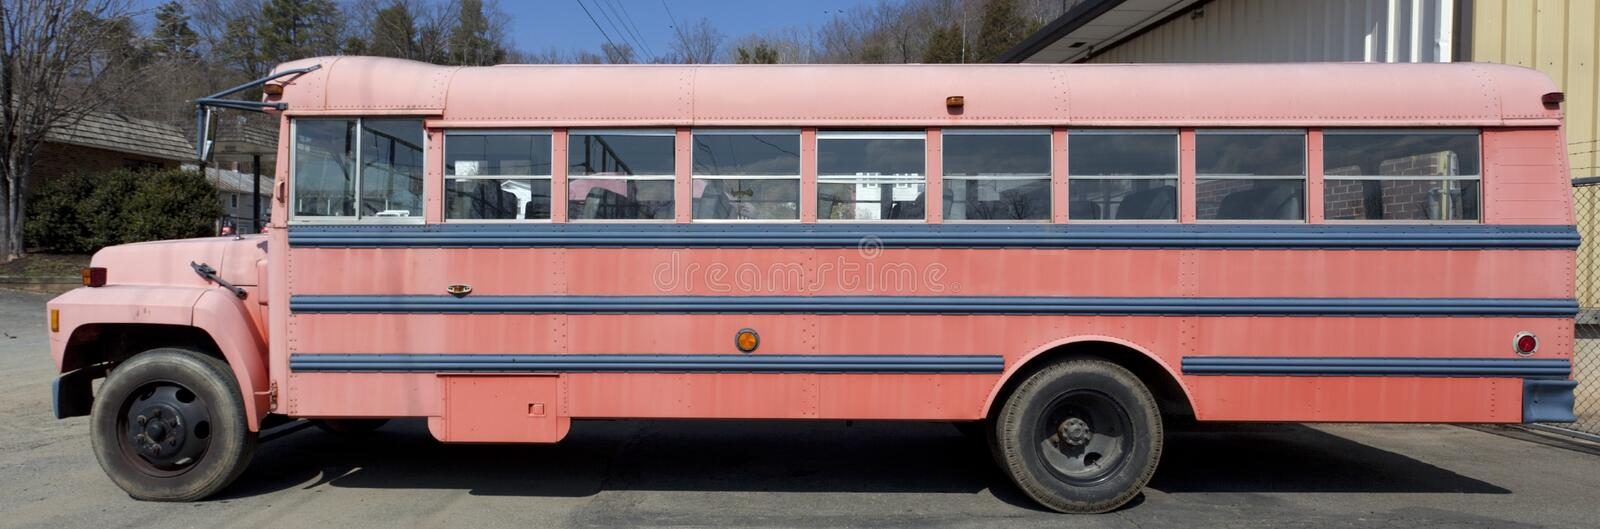 Faded School Bus royalty free stock images